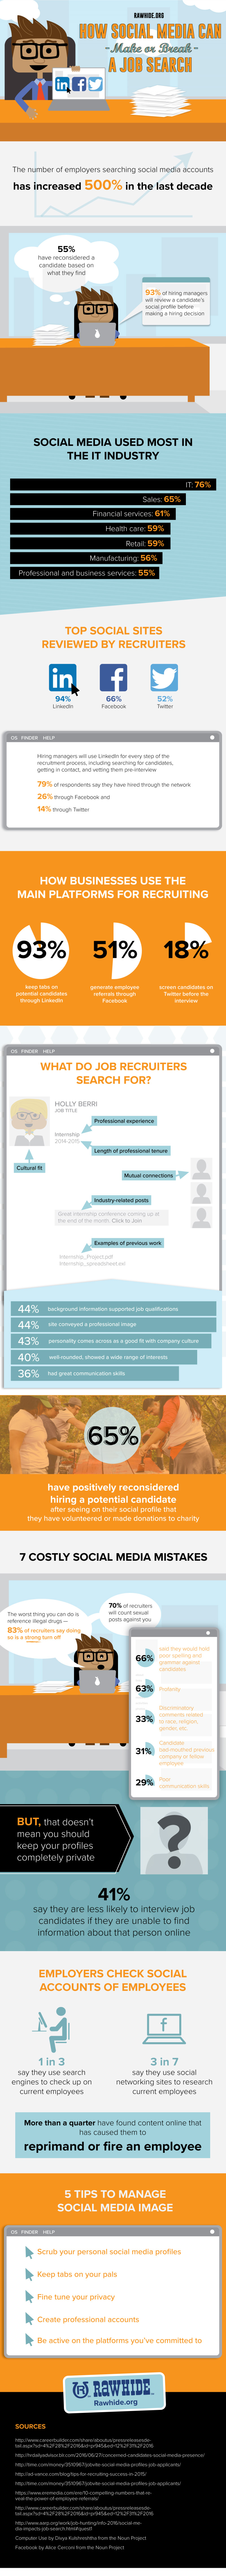 How Social Media Can Make or Break a Job Search (INFOGRAPHIC)